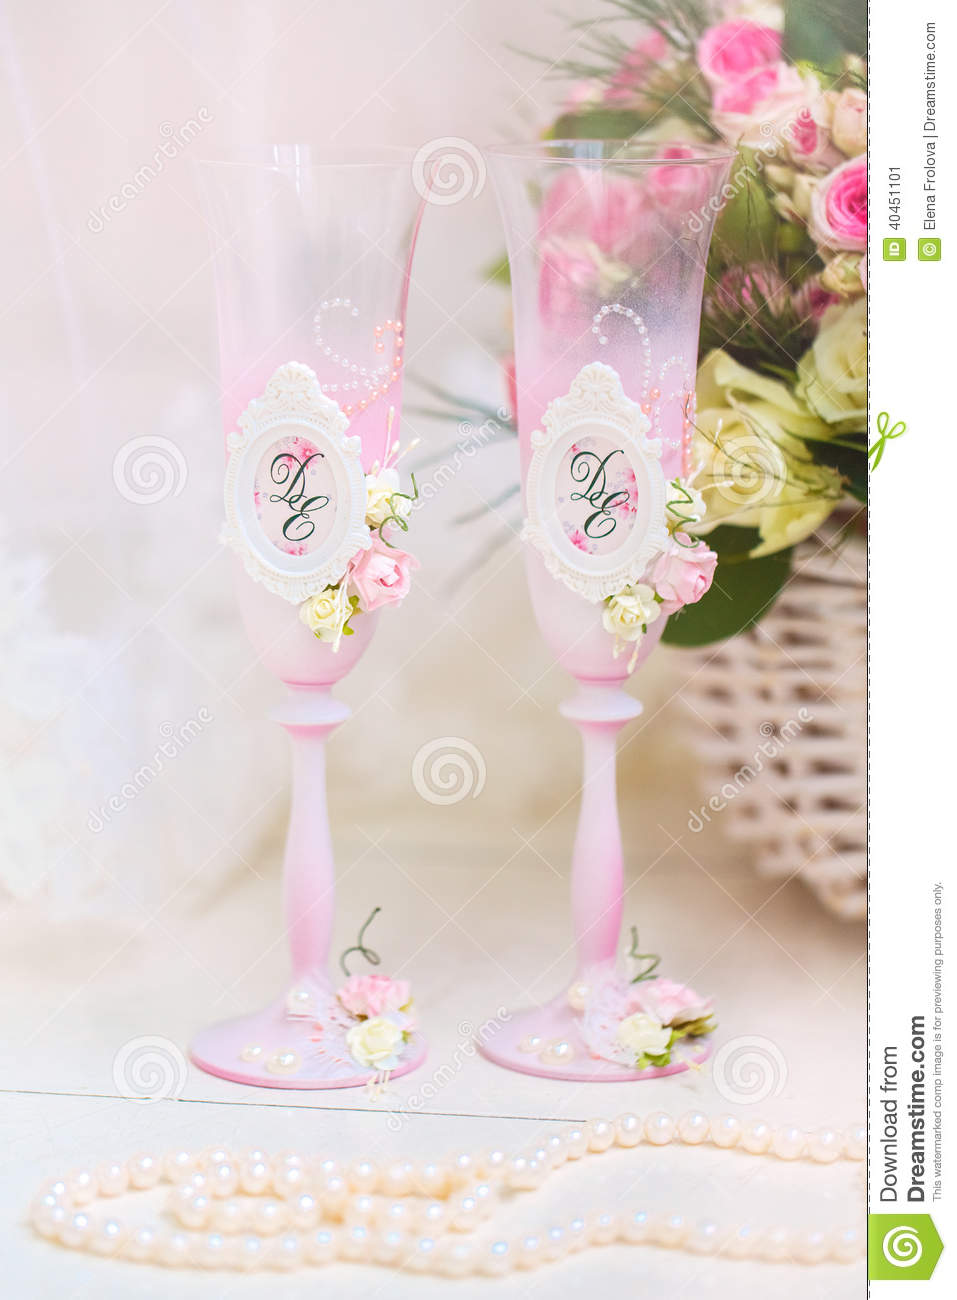 Morning Of Wedding Gift For Bride : Wedding accessories for the morning of the bride in pink . Wedding ...